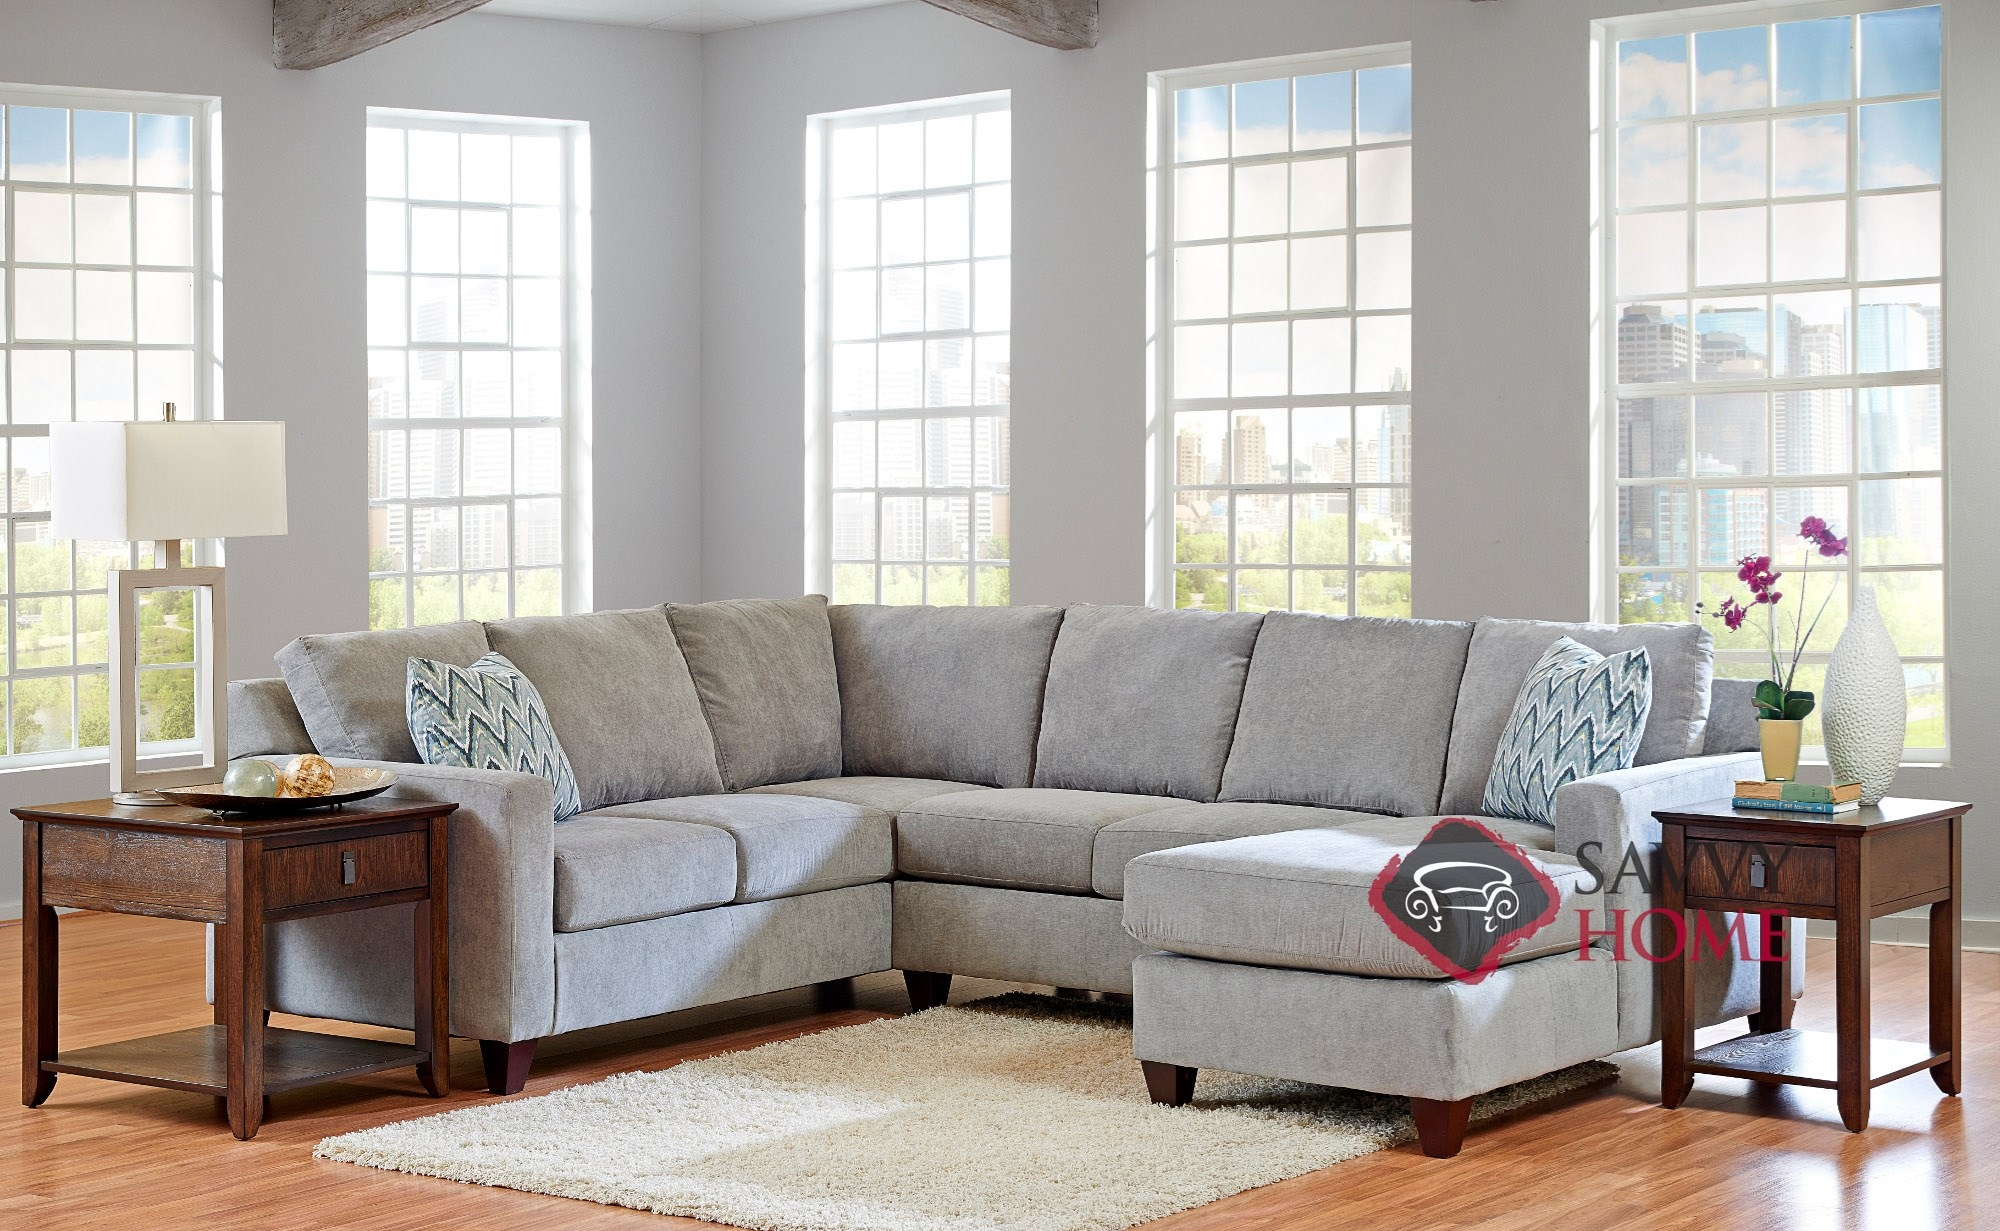 sofas u love burbank sofa retratil reclinavel 1 lugar fabric stationary true sectional by savvy is fully